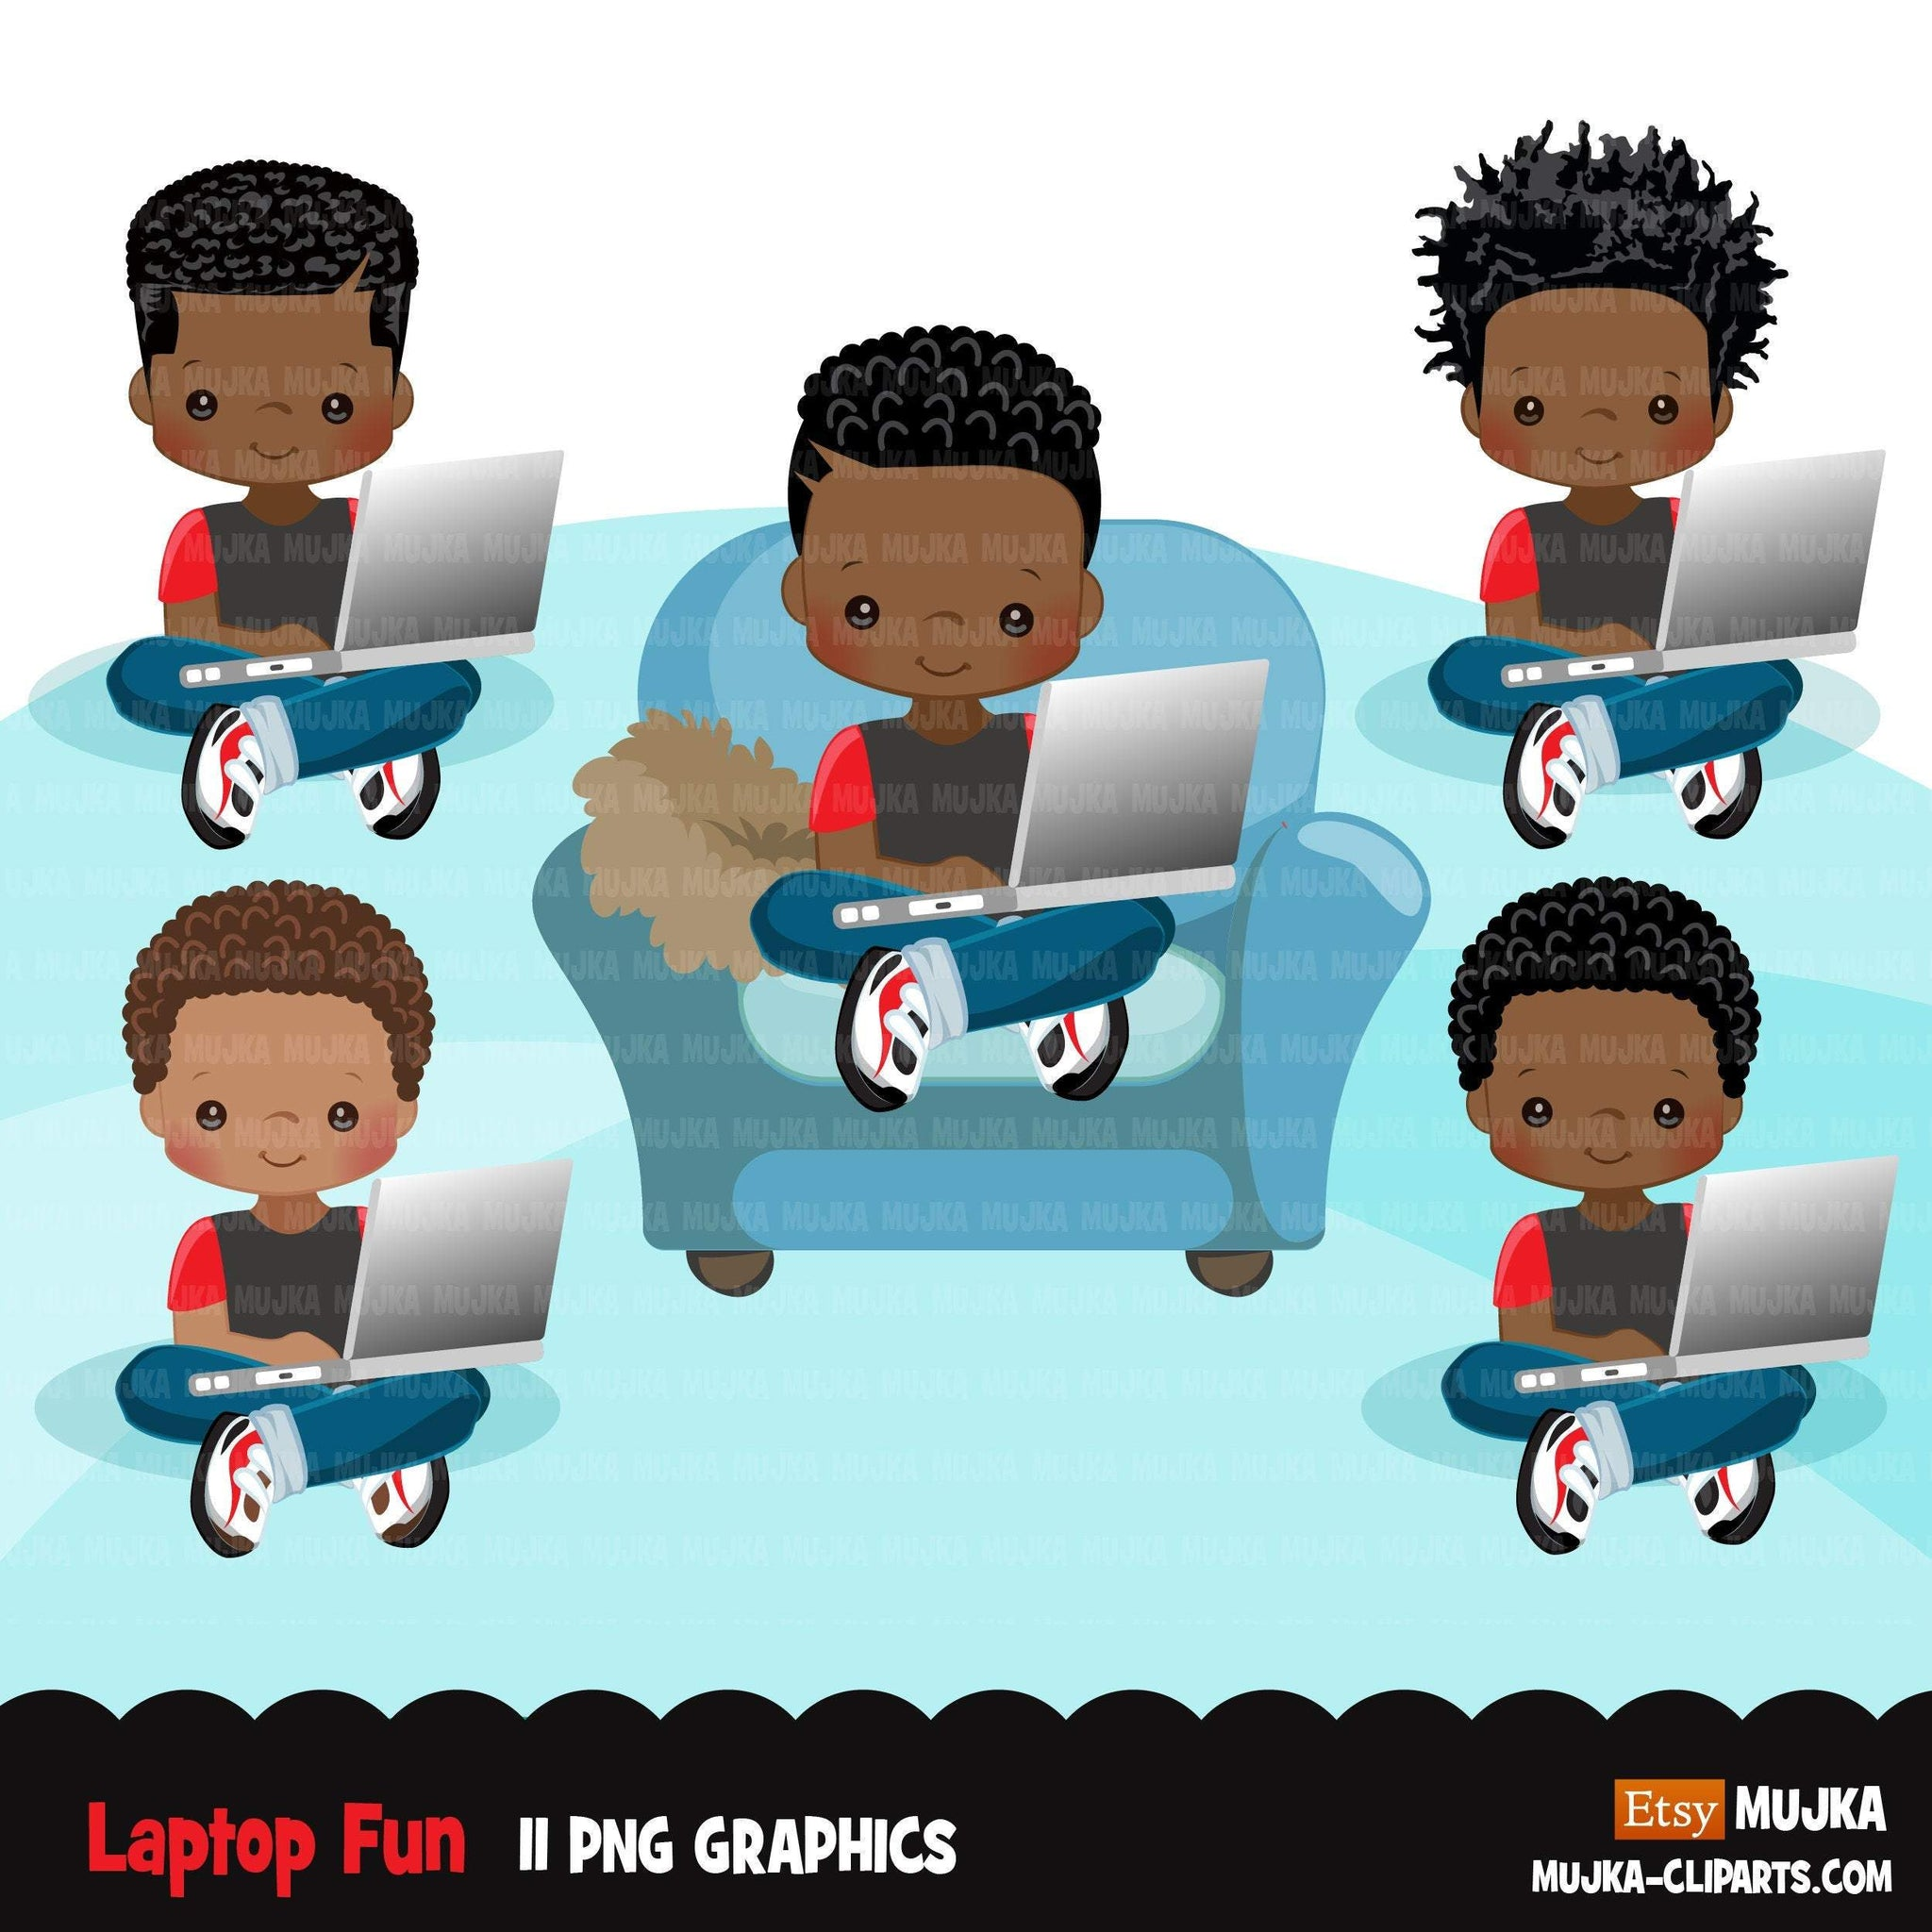 Homeschooling Boys Clipart, black boy sitting with laptop, education, sofa reading, home study graphics, commercial use PNG clip art